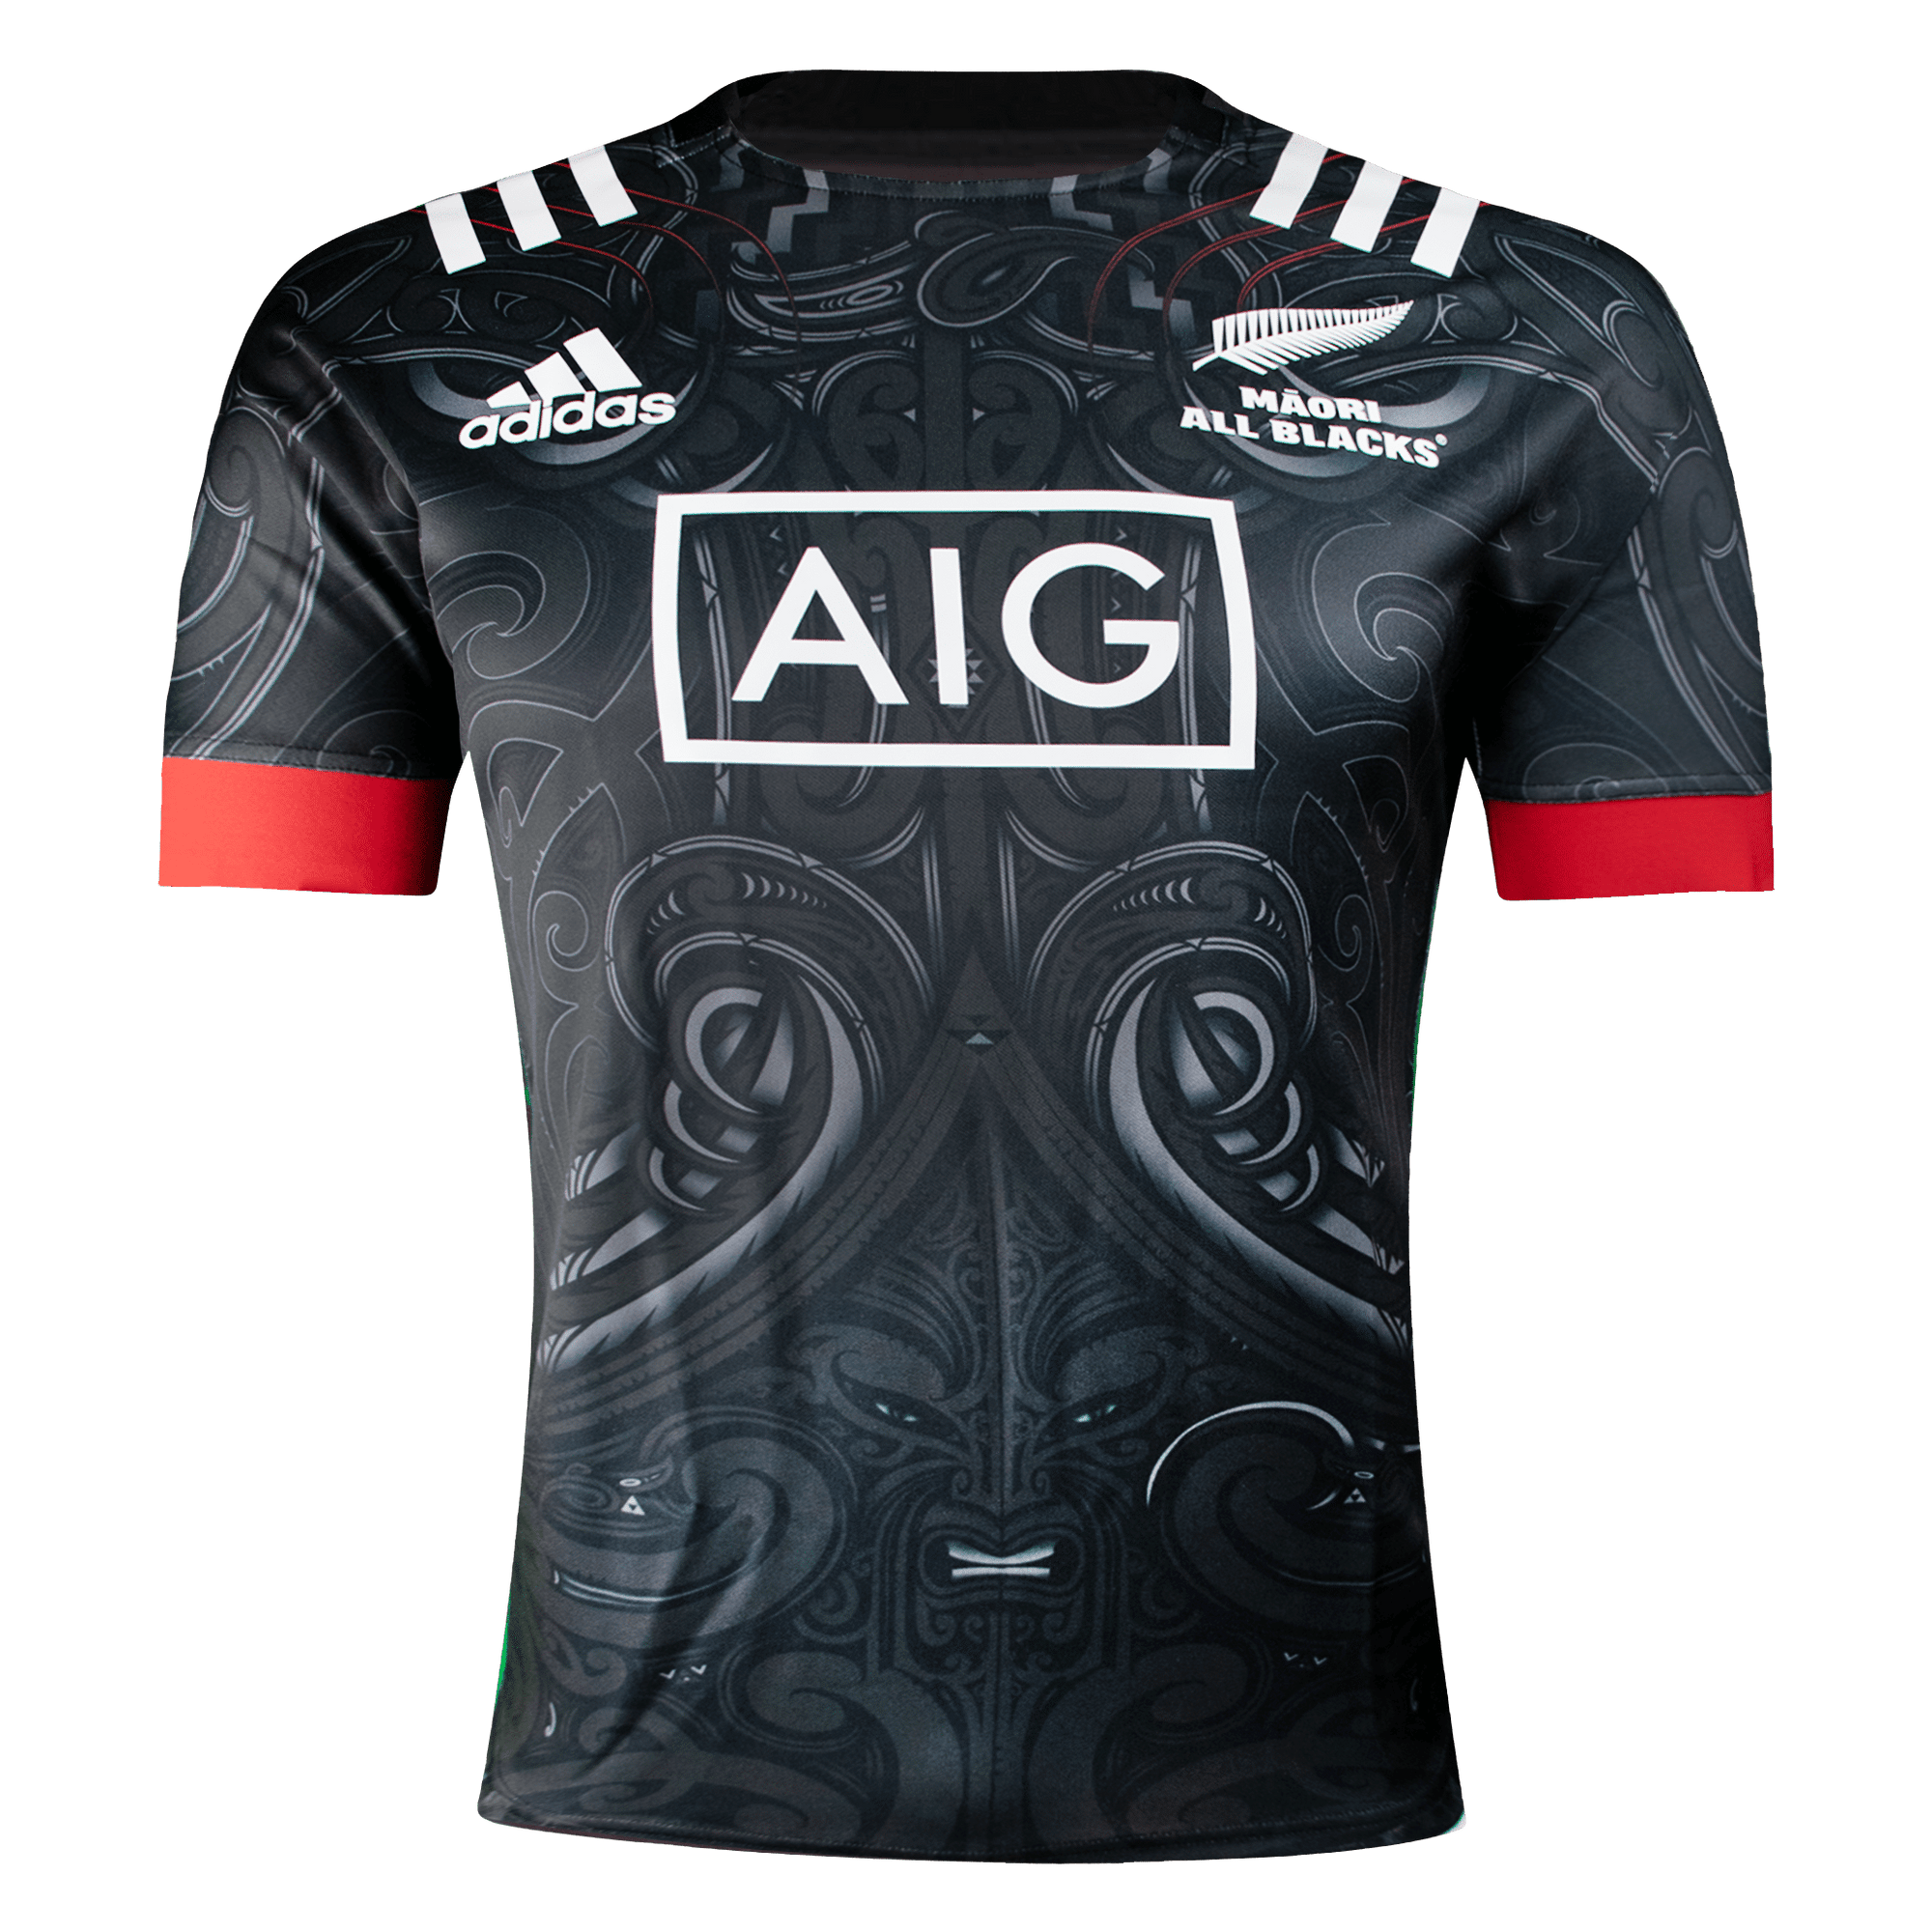 Adidas Māori All Blacks Rugby Jersey Front View